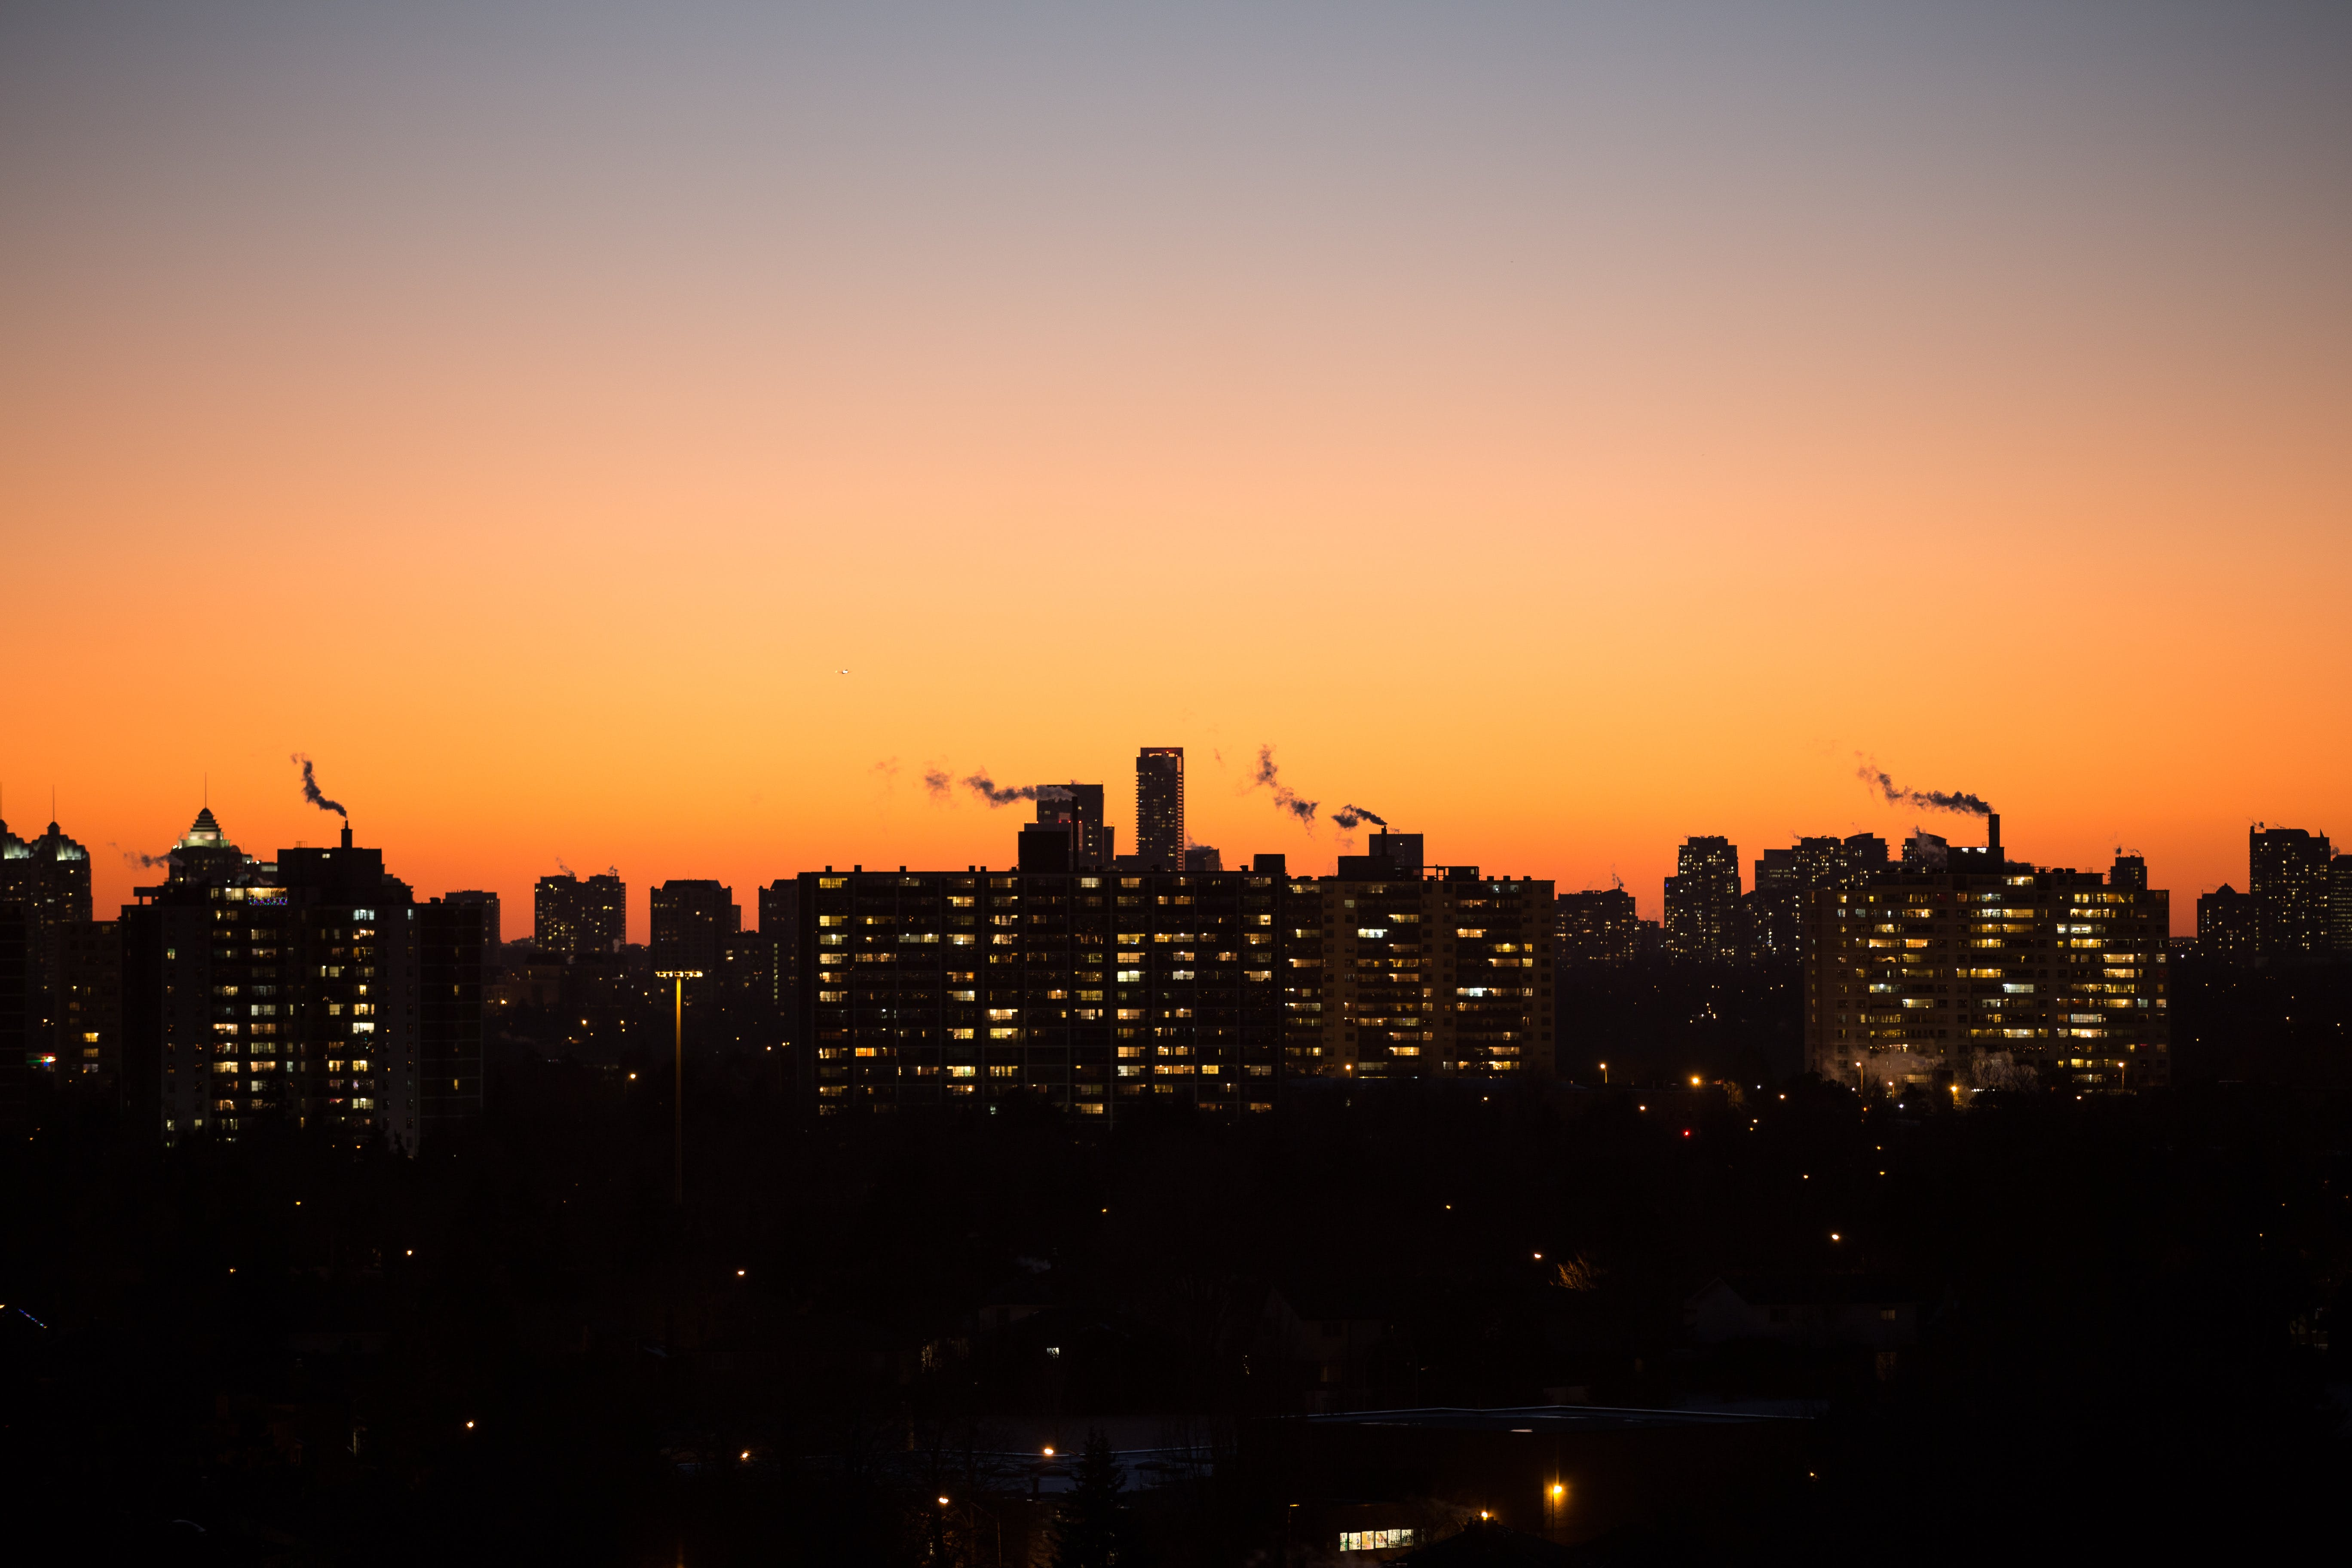 Silhouette of City Buildings